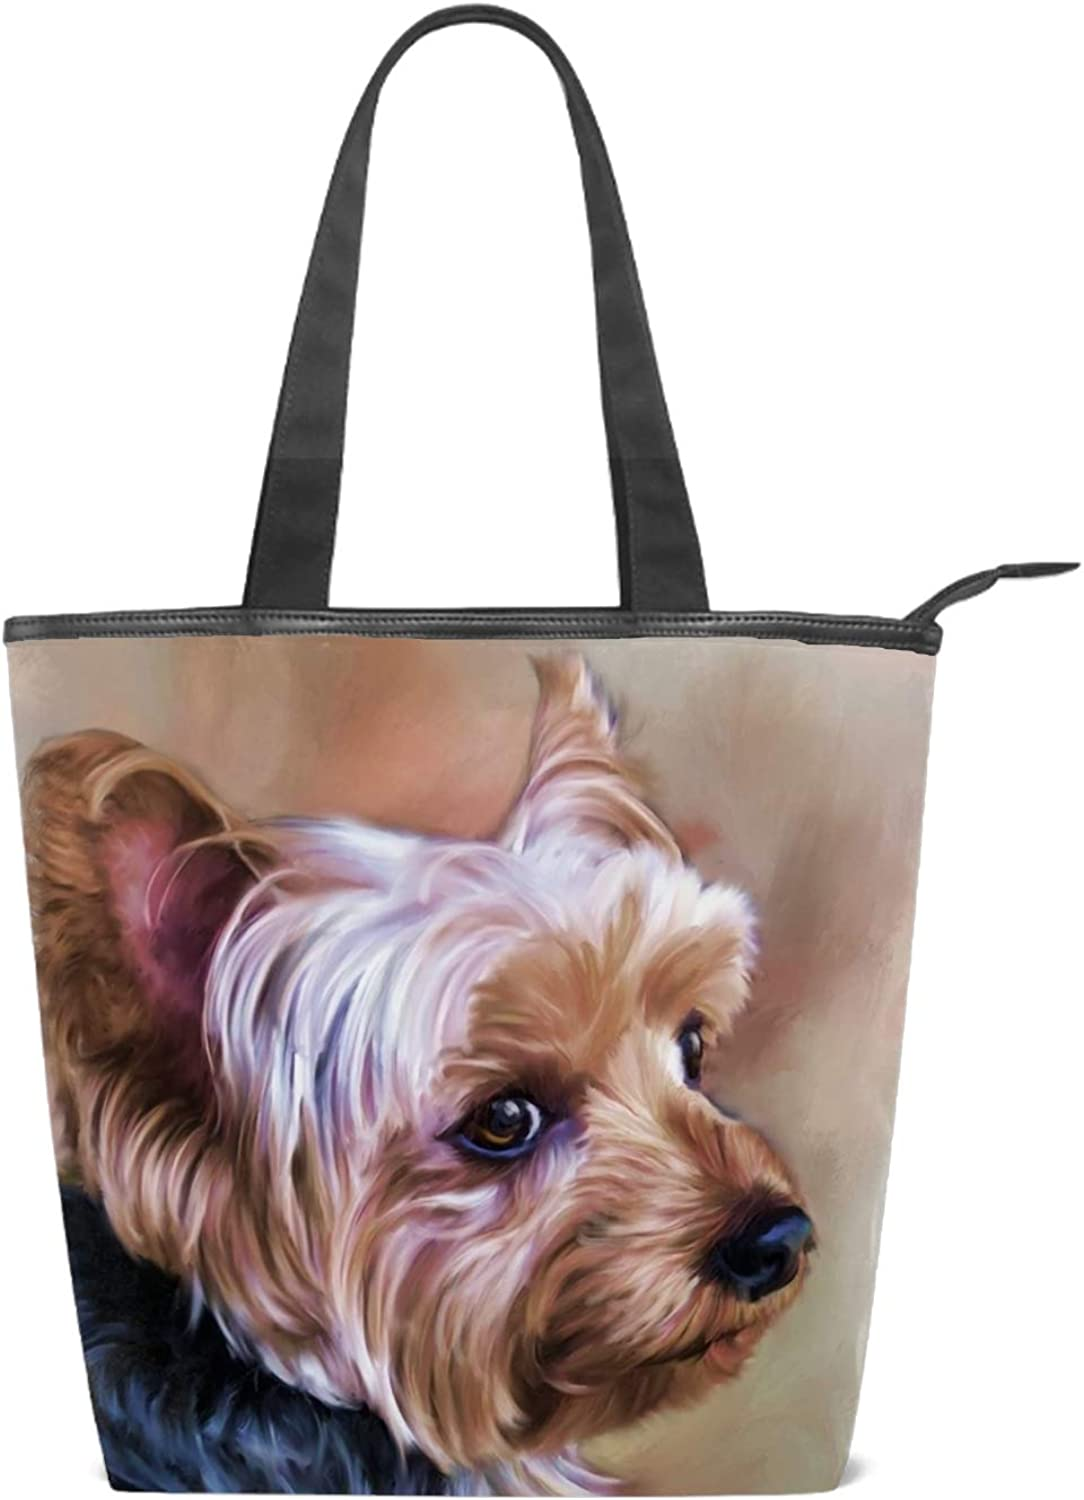 Yorkie Purses and Handbags Dog Tote Bag for Women Dogs Print Purse